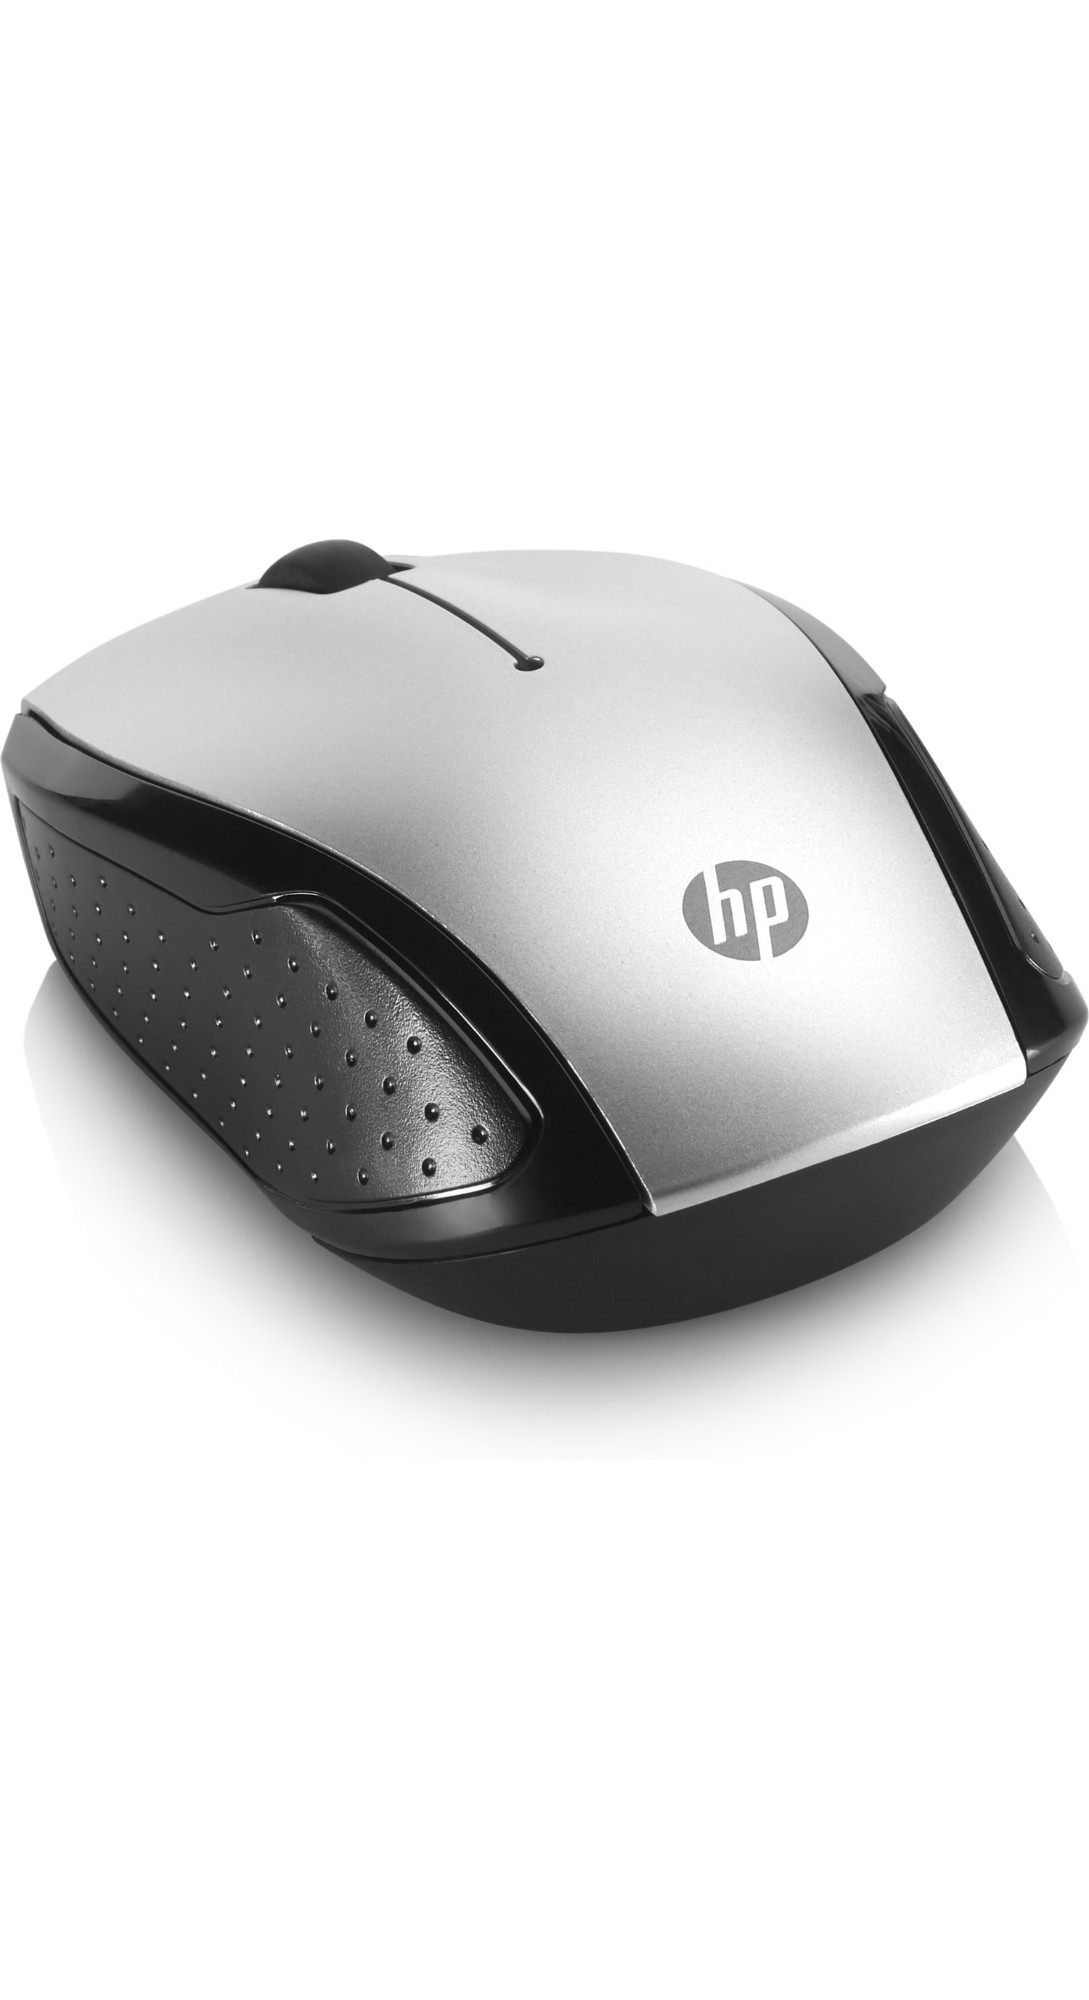 HP 201 mice Ambidextrous Black, Silver